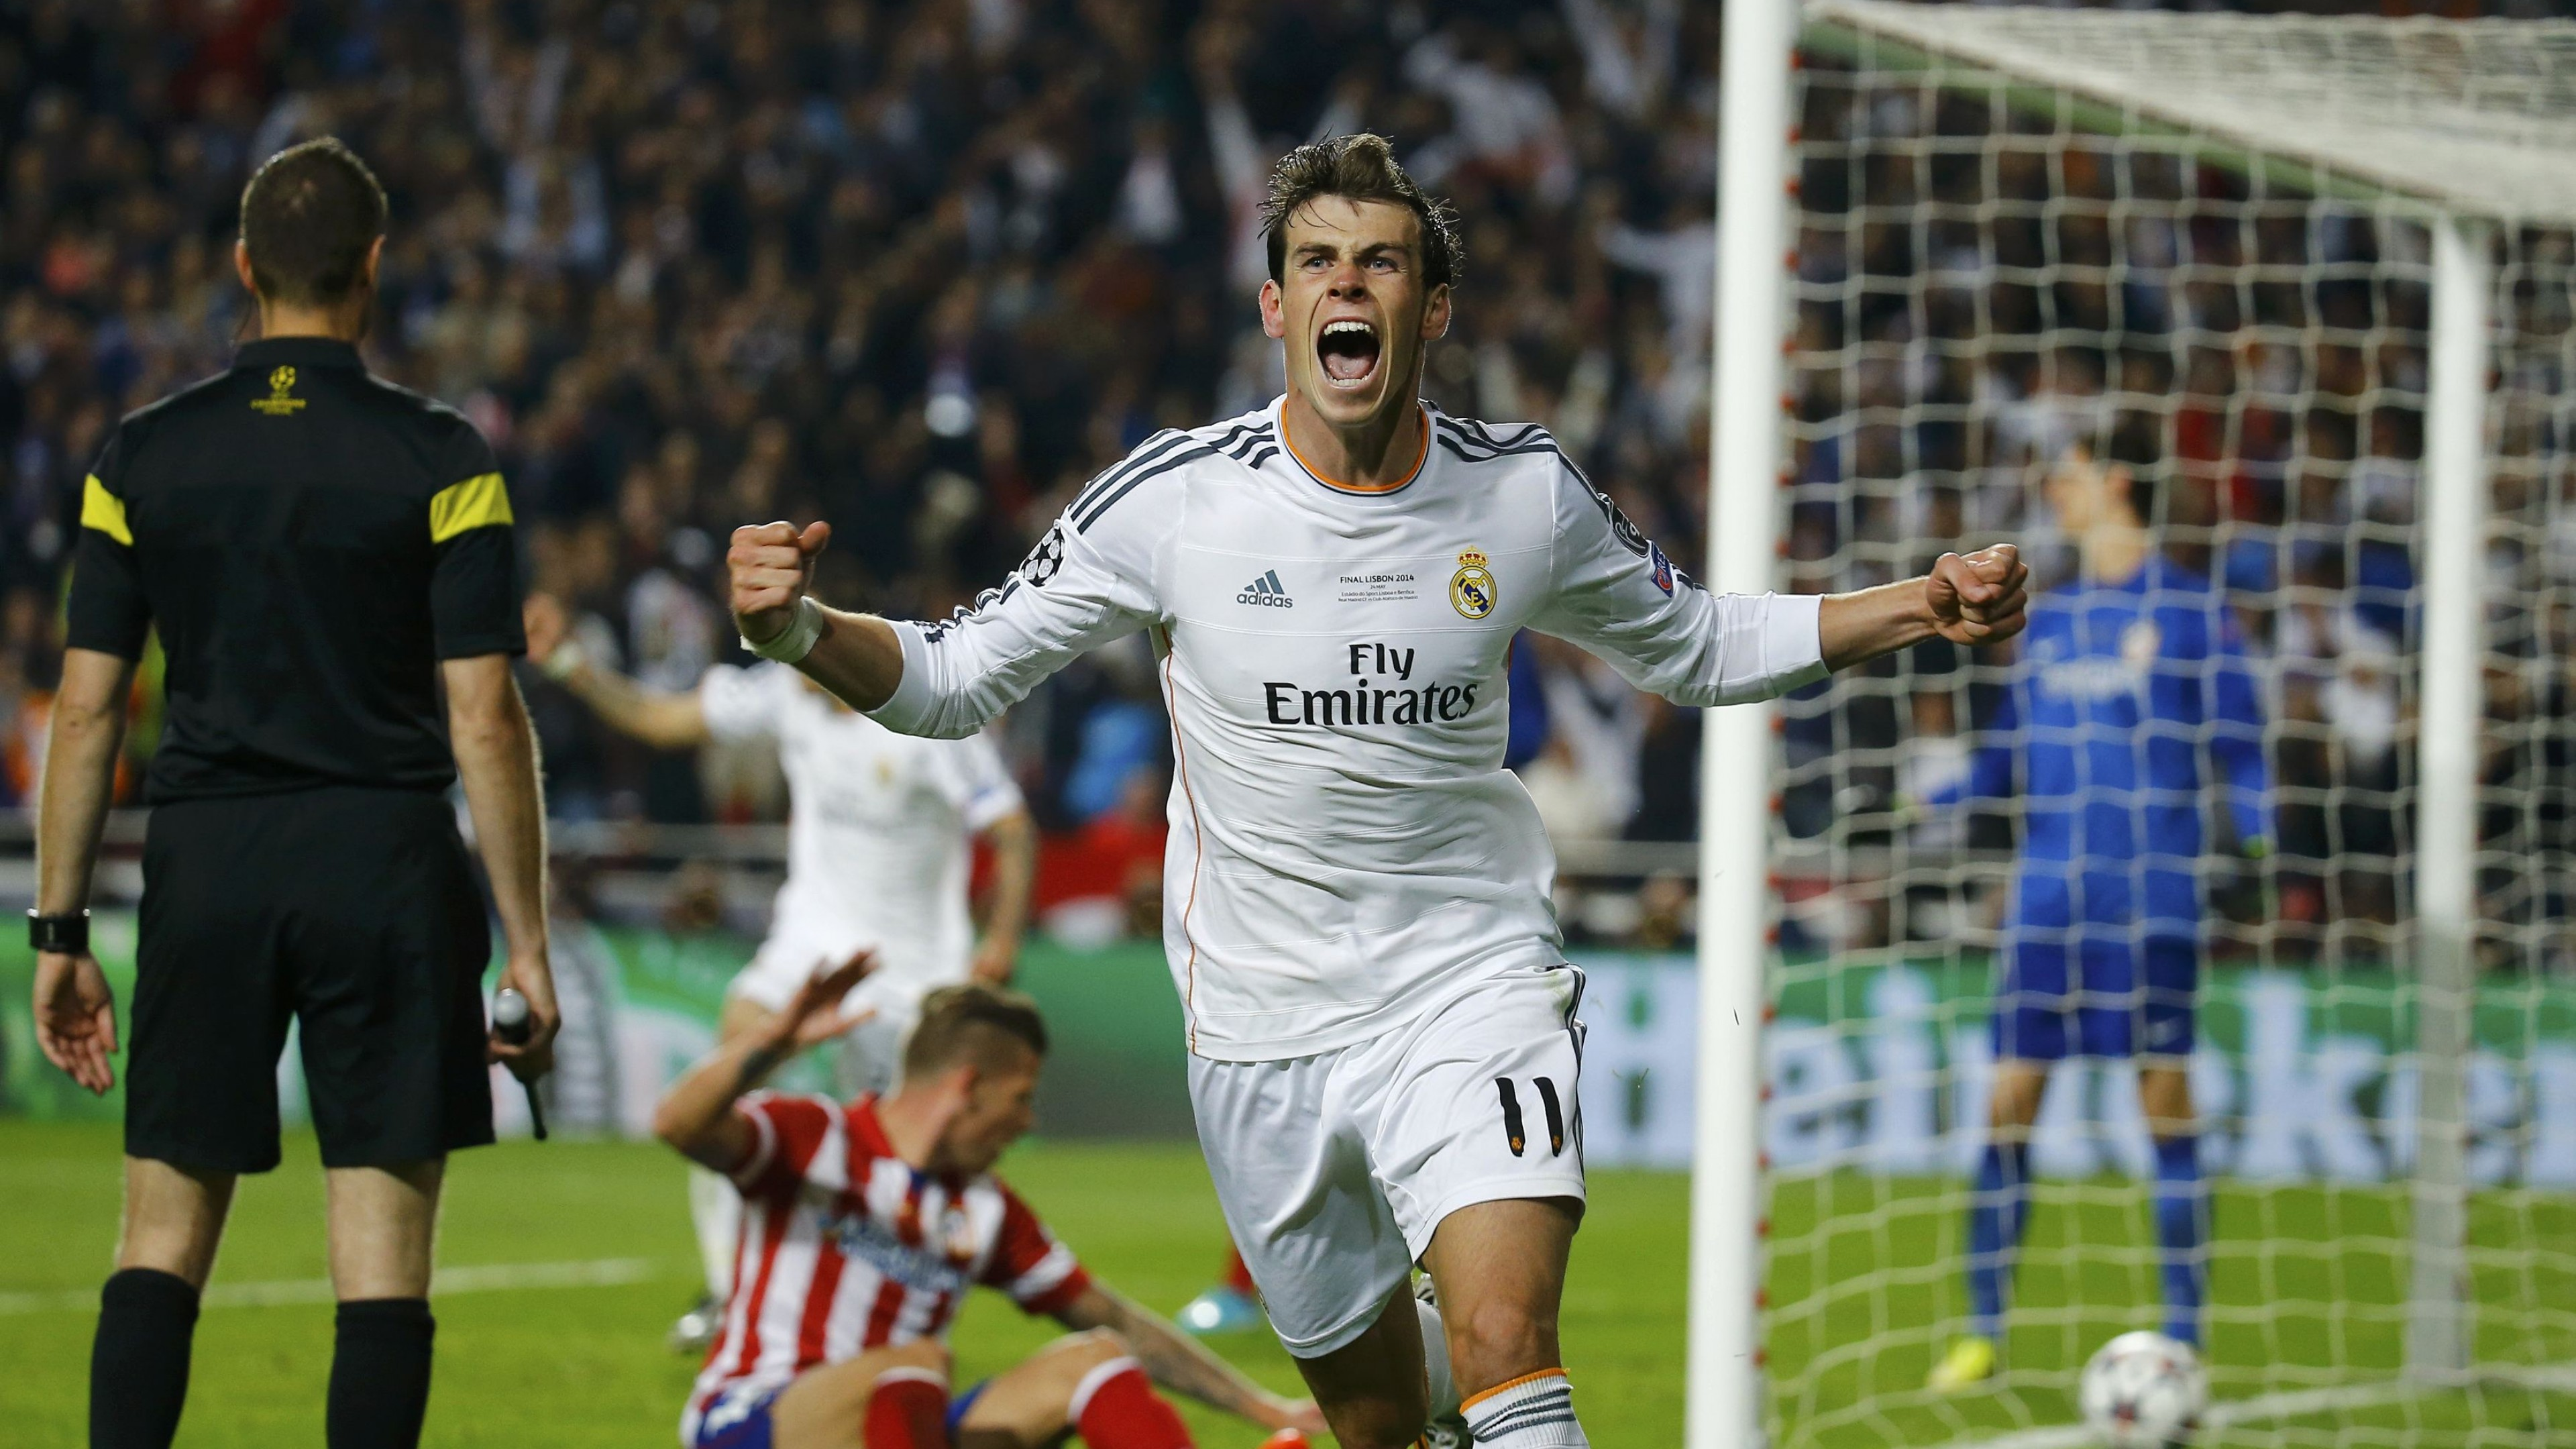 Wallpaper Football Gareth Bale Soccer The Best Players 2015 FIFA